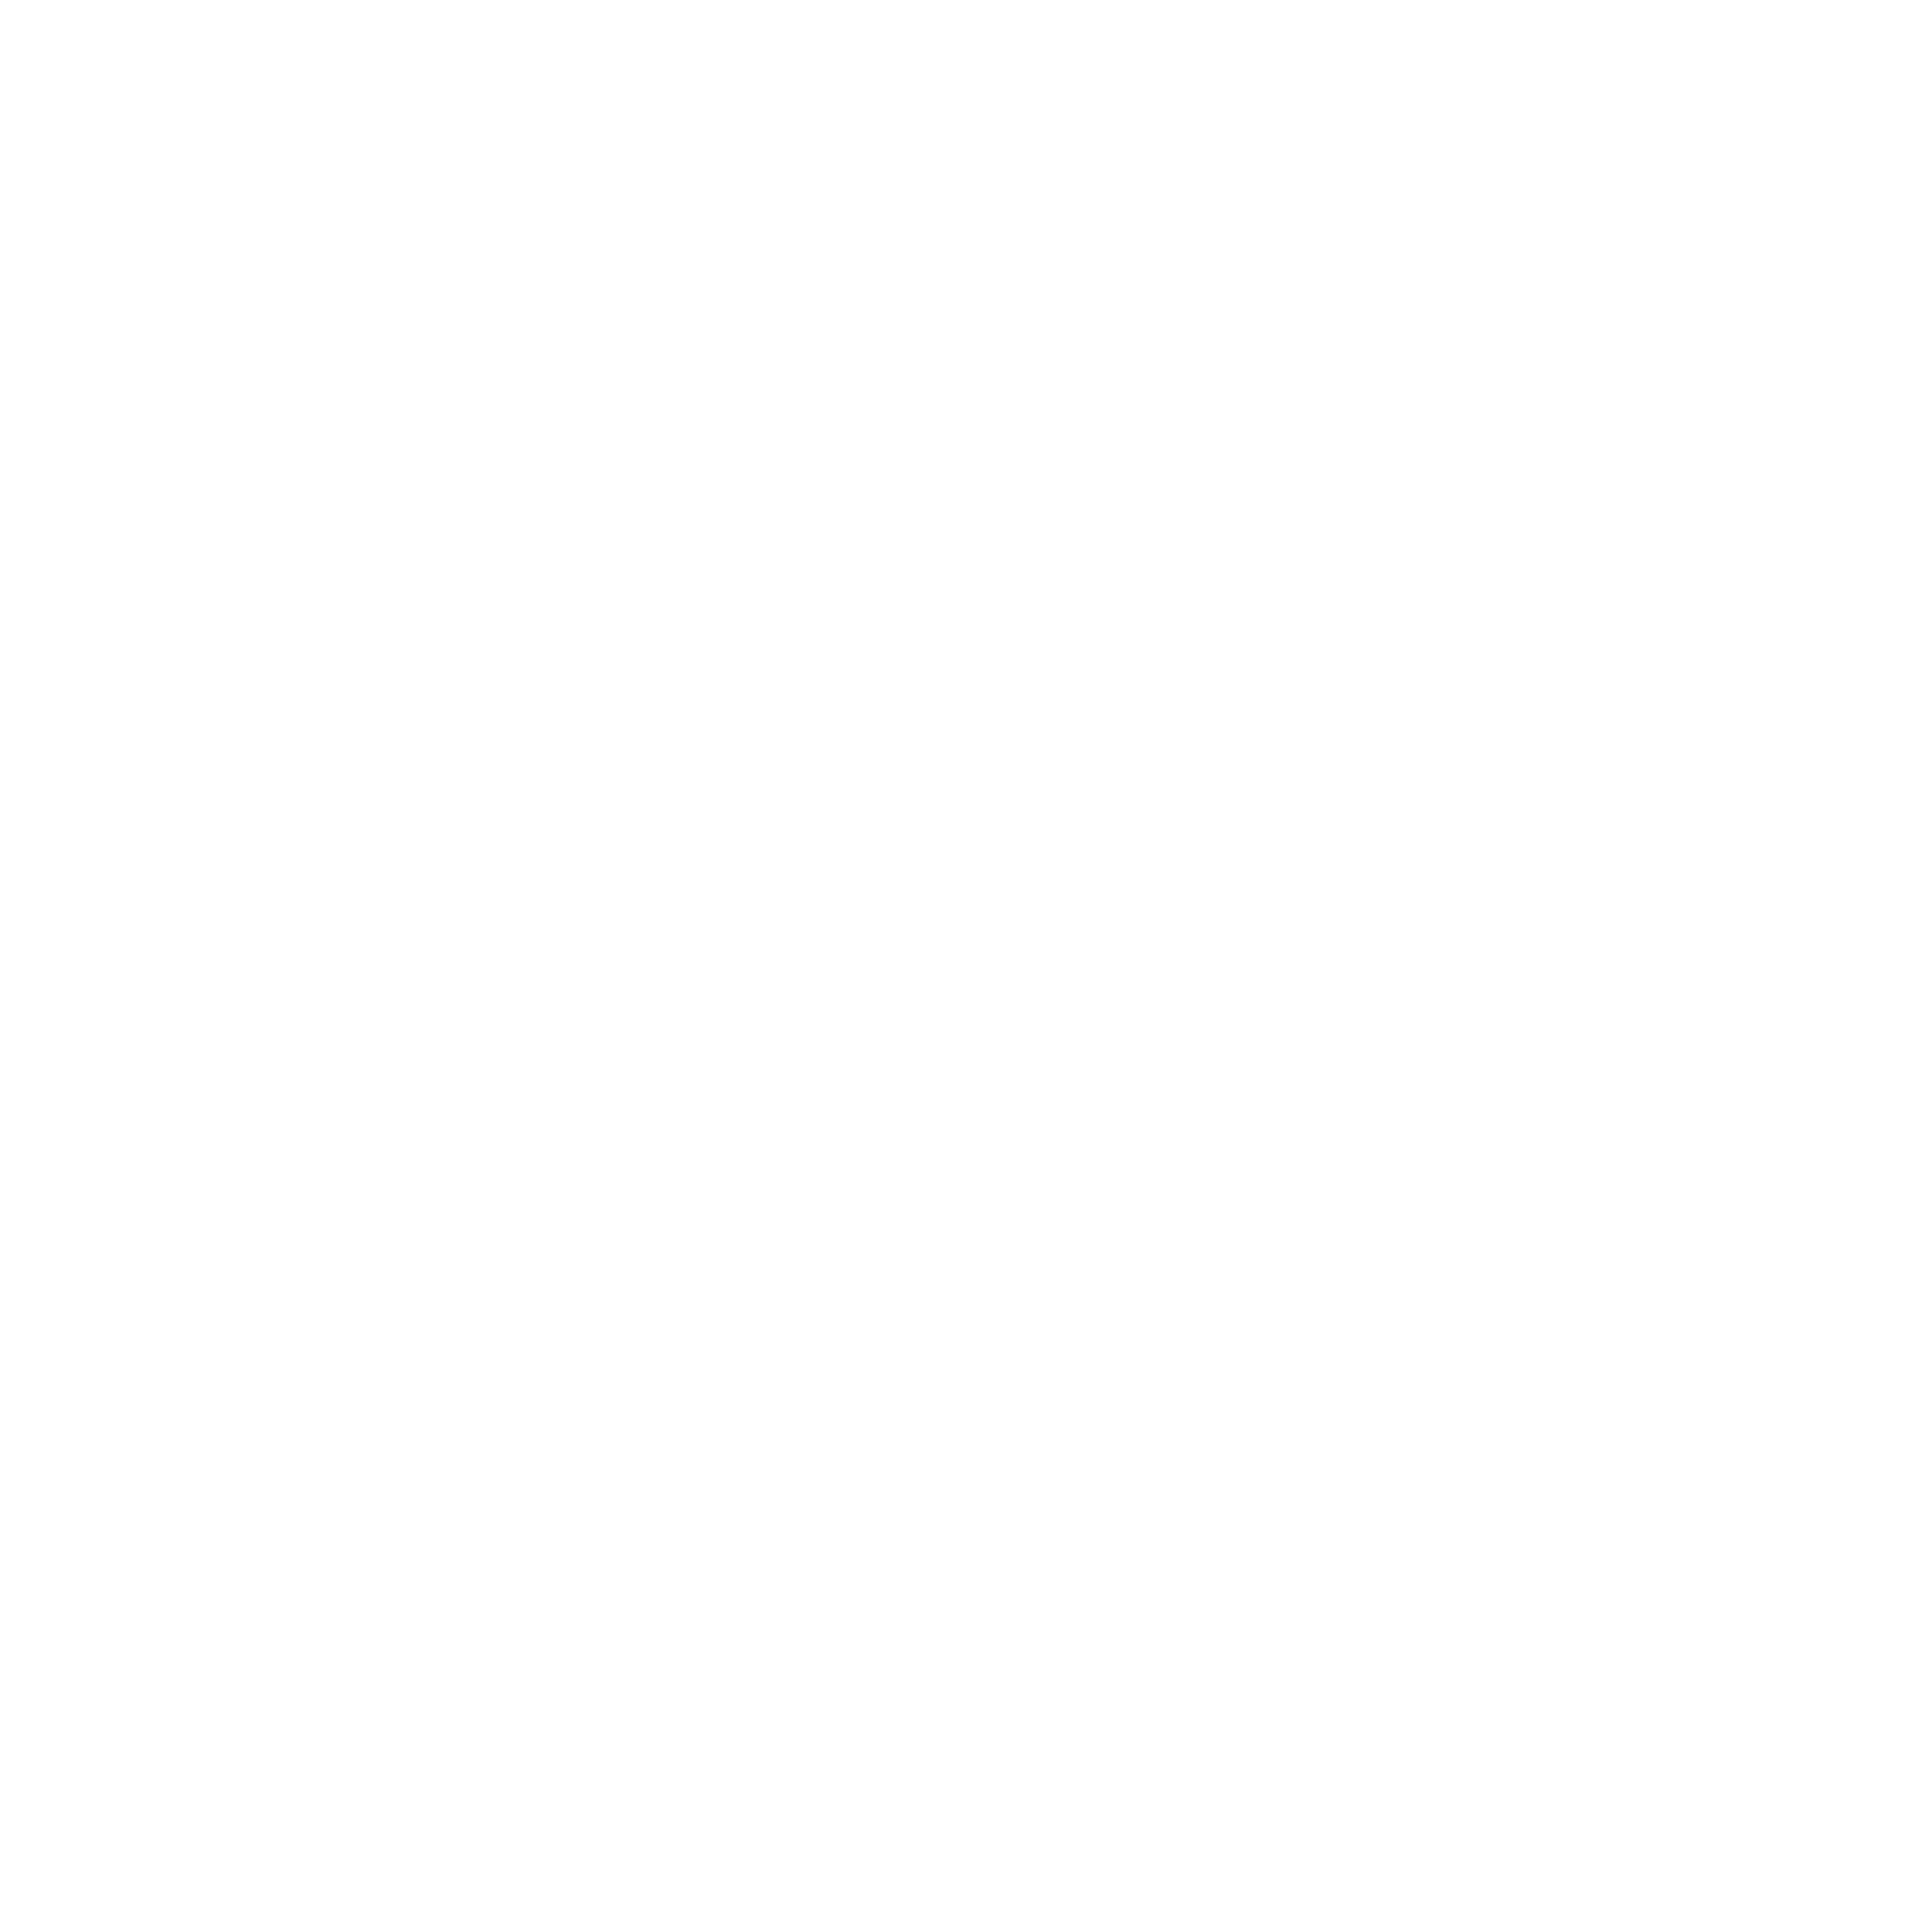 Email logo white png. Icon page ico icns